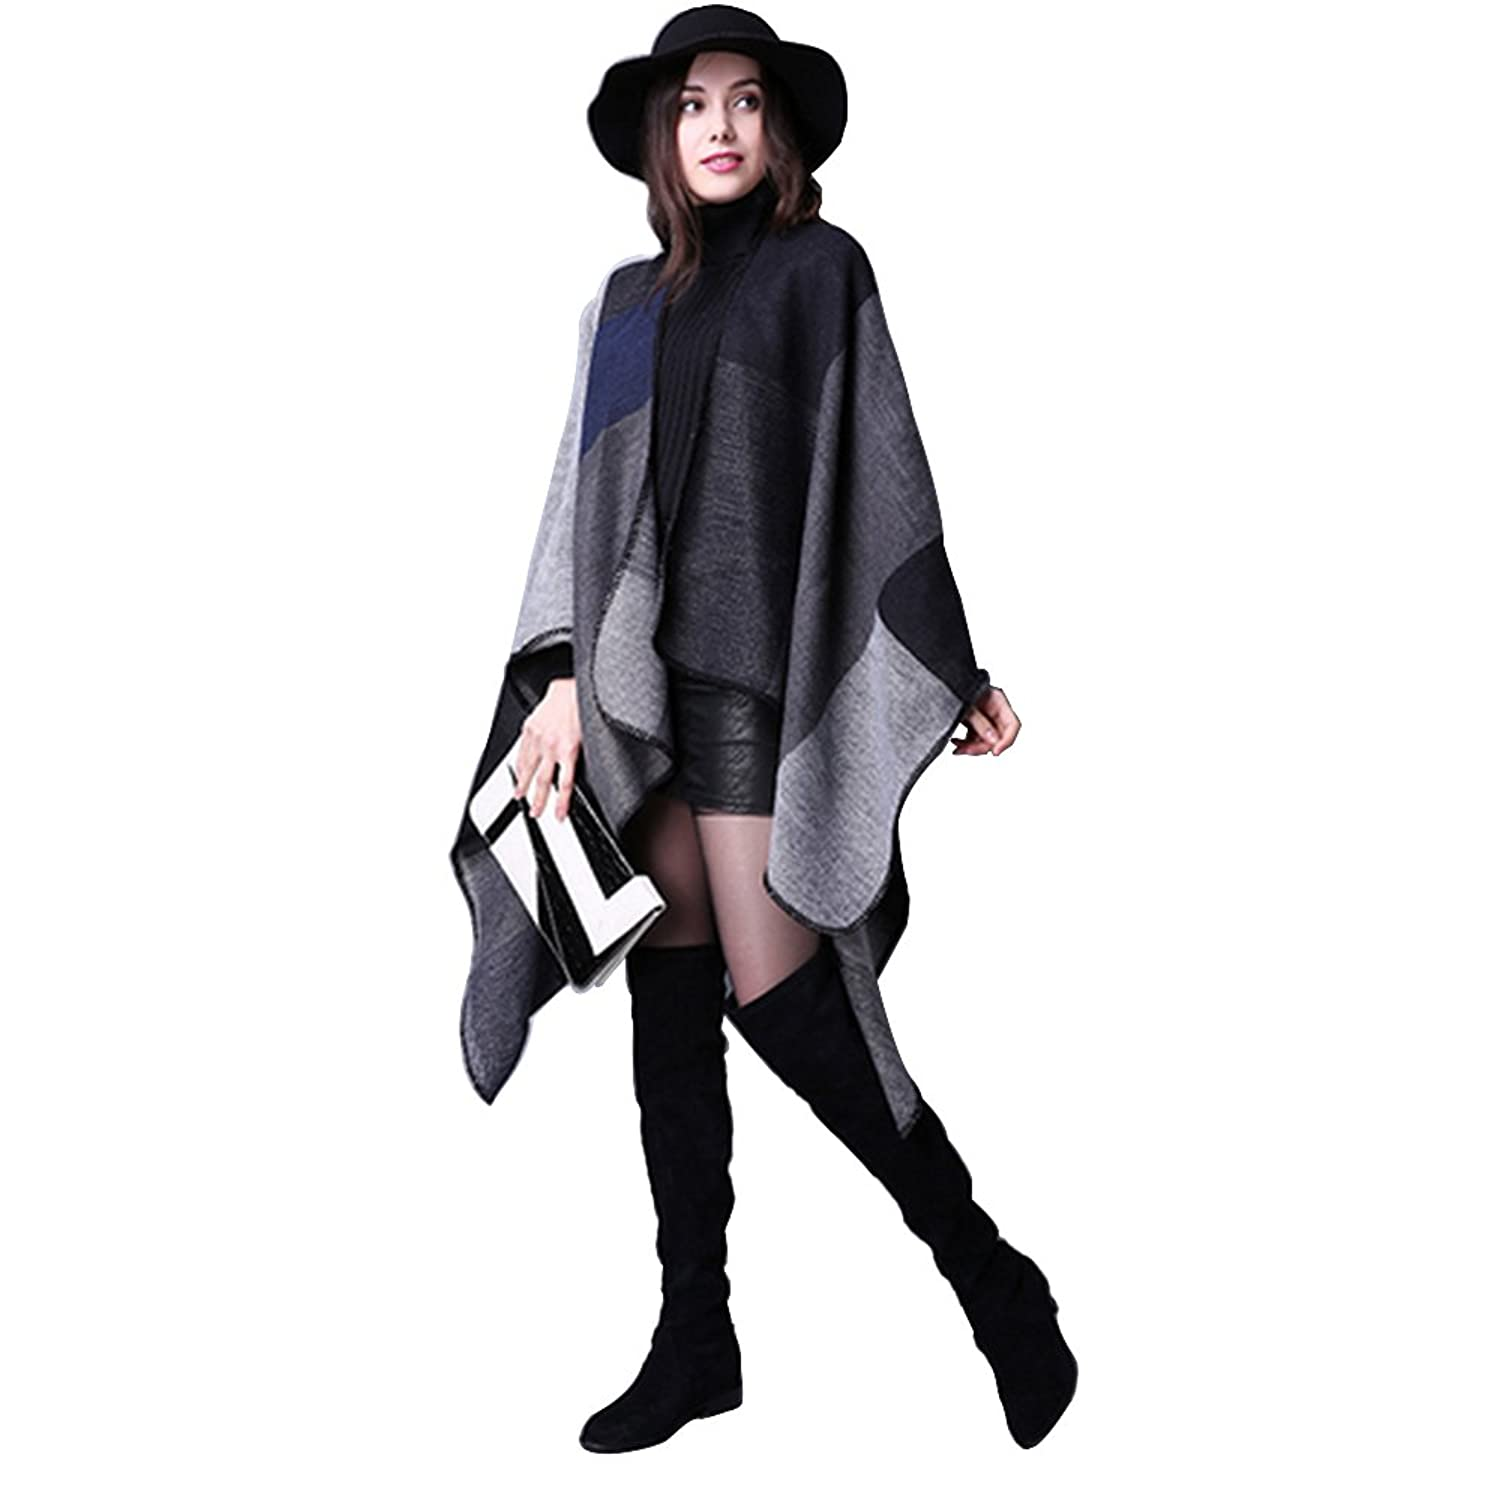 Winter Shawl - VESIPA Thicker Cardigans, Reversible Oversized Blanket, Poncho, Cape, Scarf, Long Cozy Coat for Women Girl